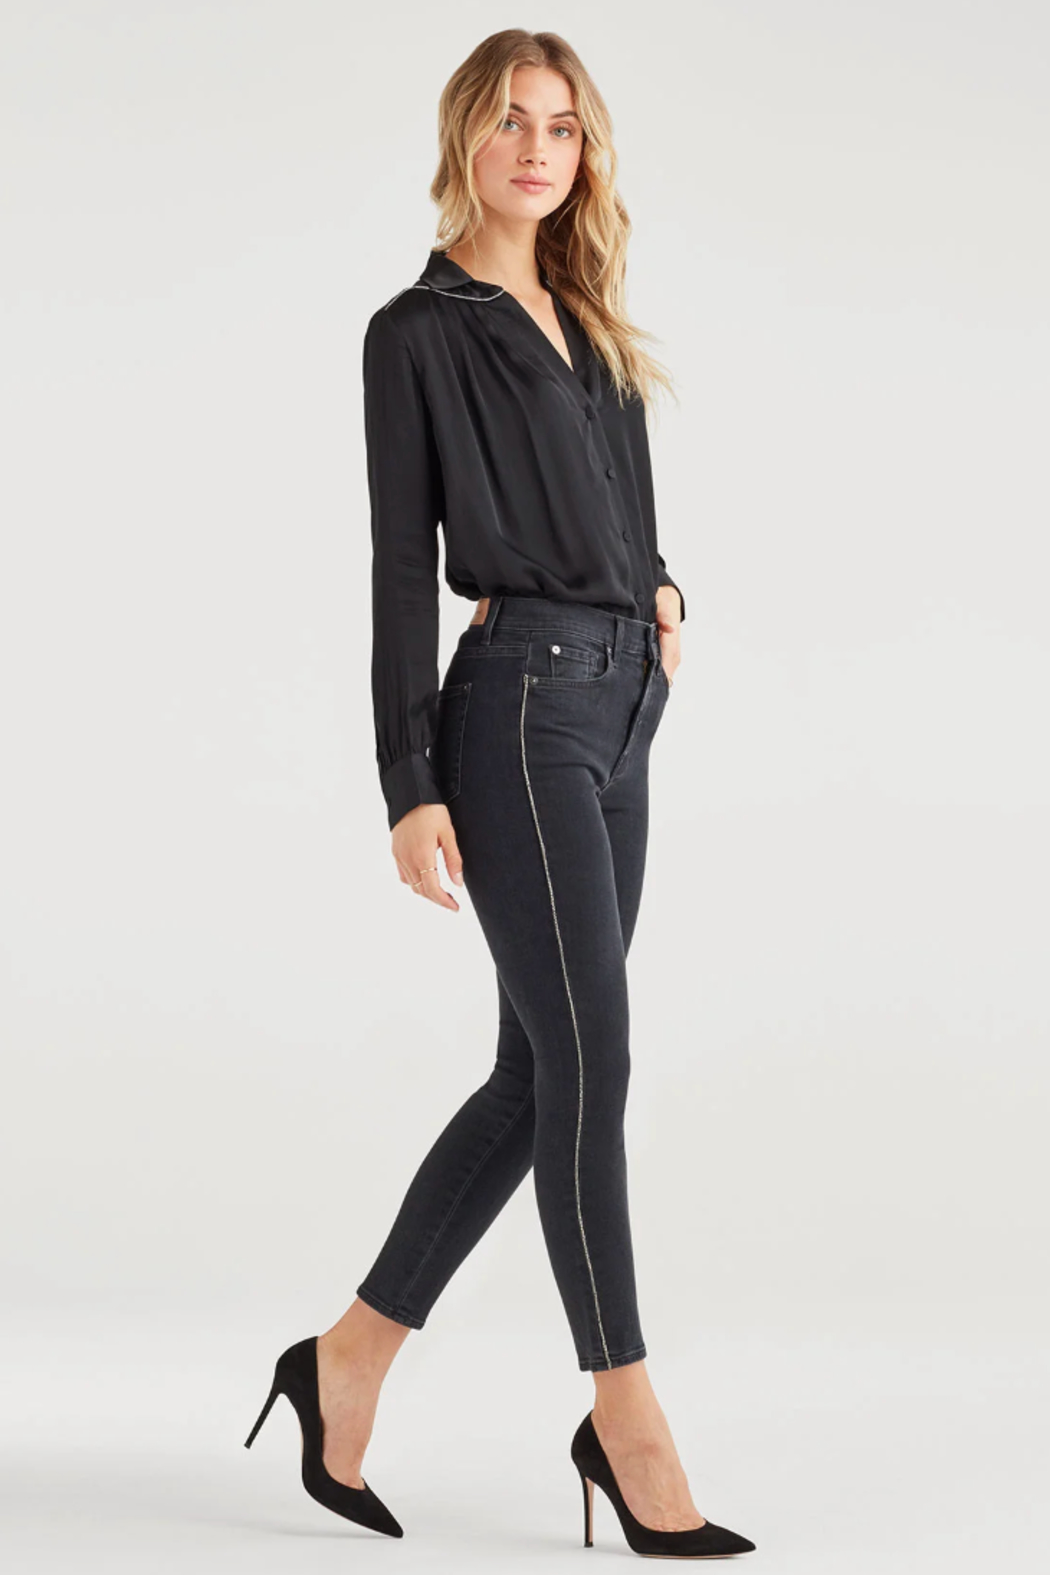 7 For all Mankind Luxe Vintage High Waist Ankle Skinny with Snake Piping in Moon Shadow - Main Image